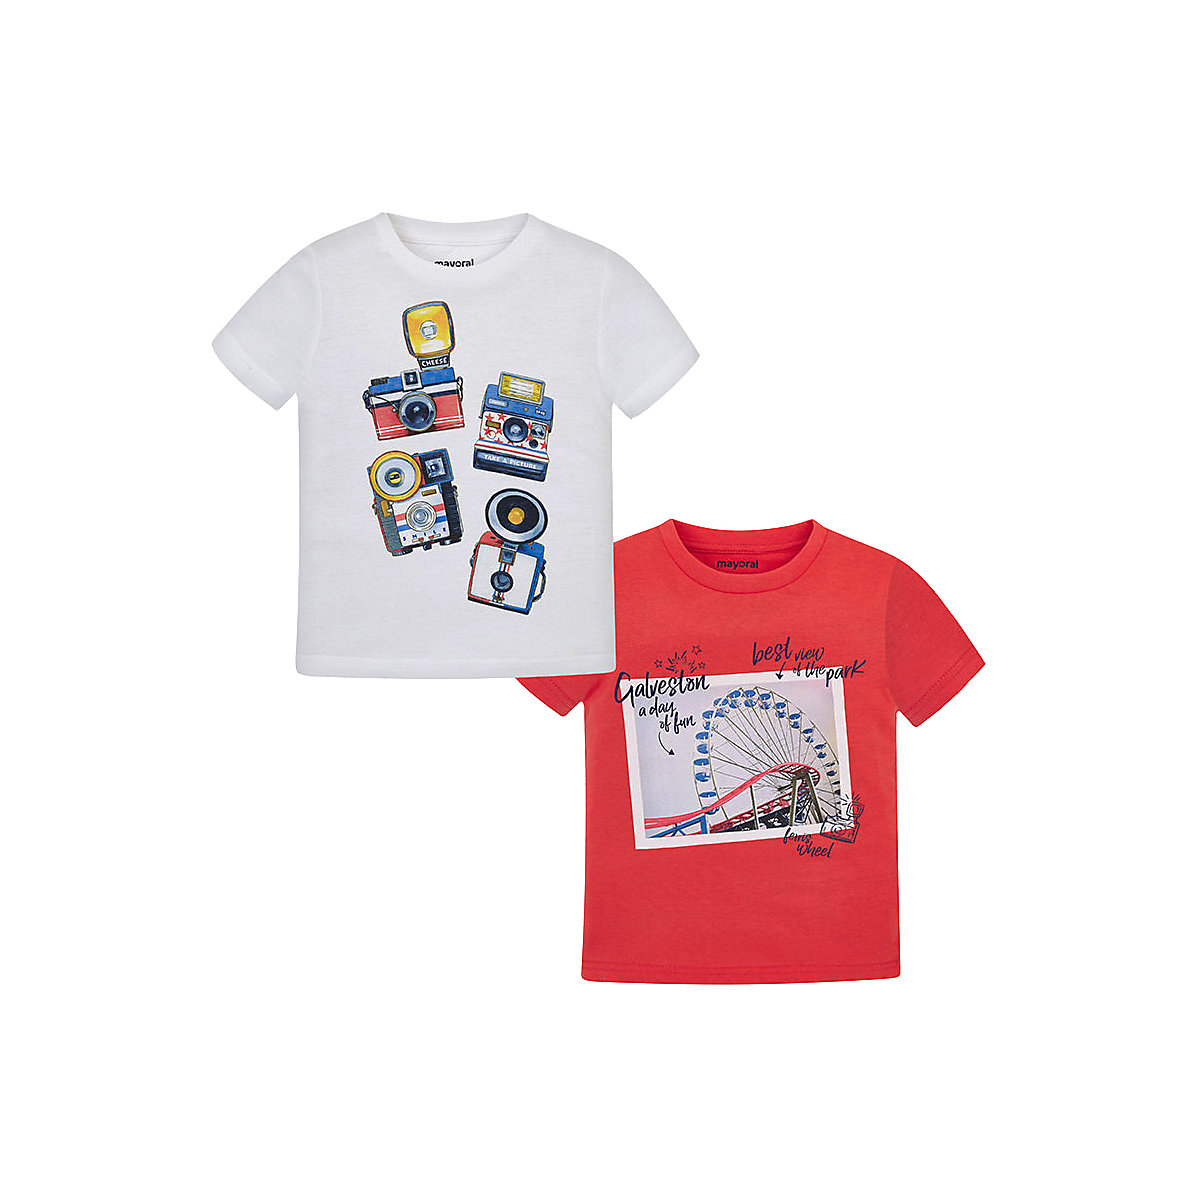 Baby's Sets MAYORAL 10687187 set of clothes for kids T-shirt legs shirt shorts girls and boys hot summer sportswear jerseys shorts skeleton pattern cycling sets for outdoor sport